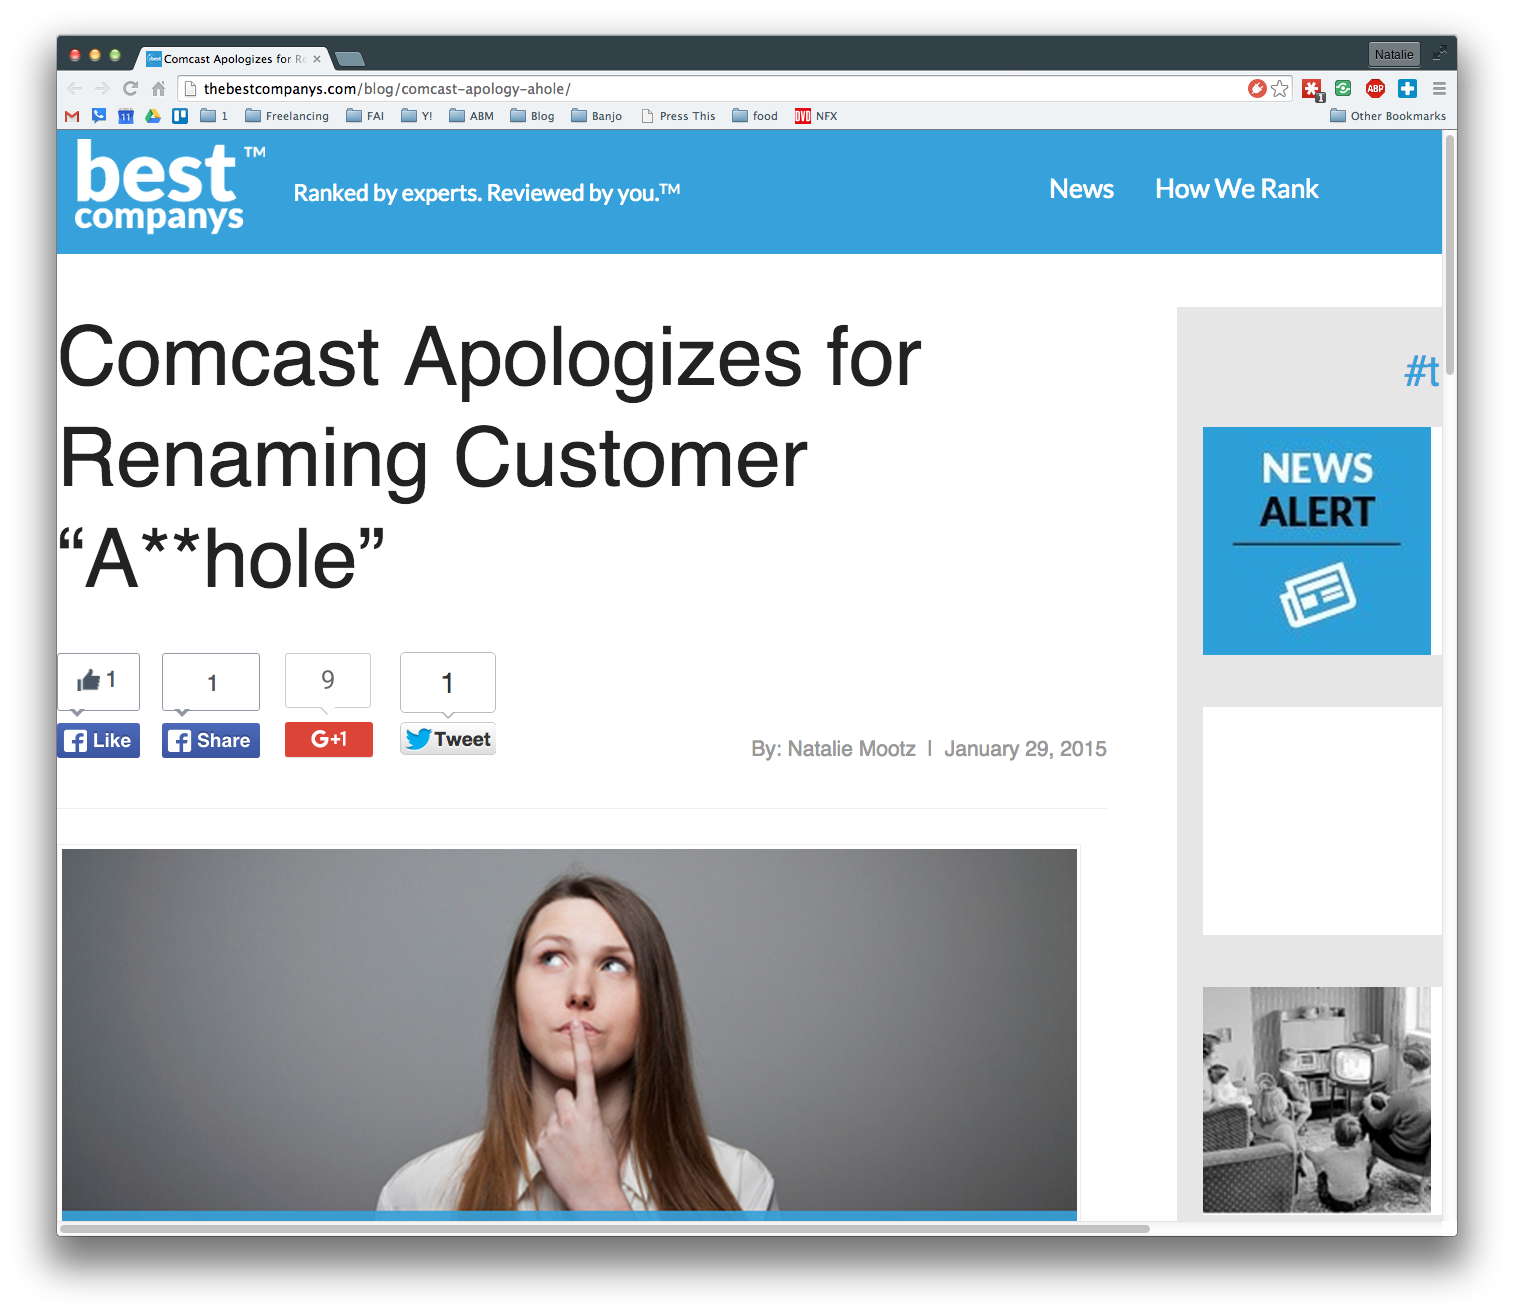 """Comcast Apologizes for Renaming Customer """"A**hole"""""""